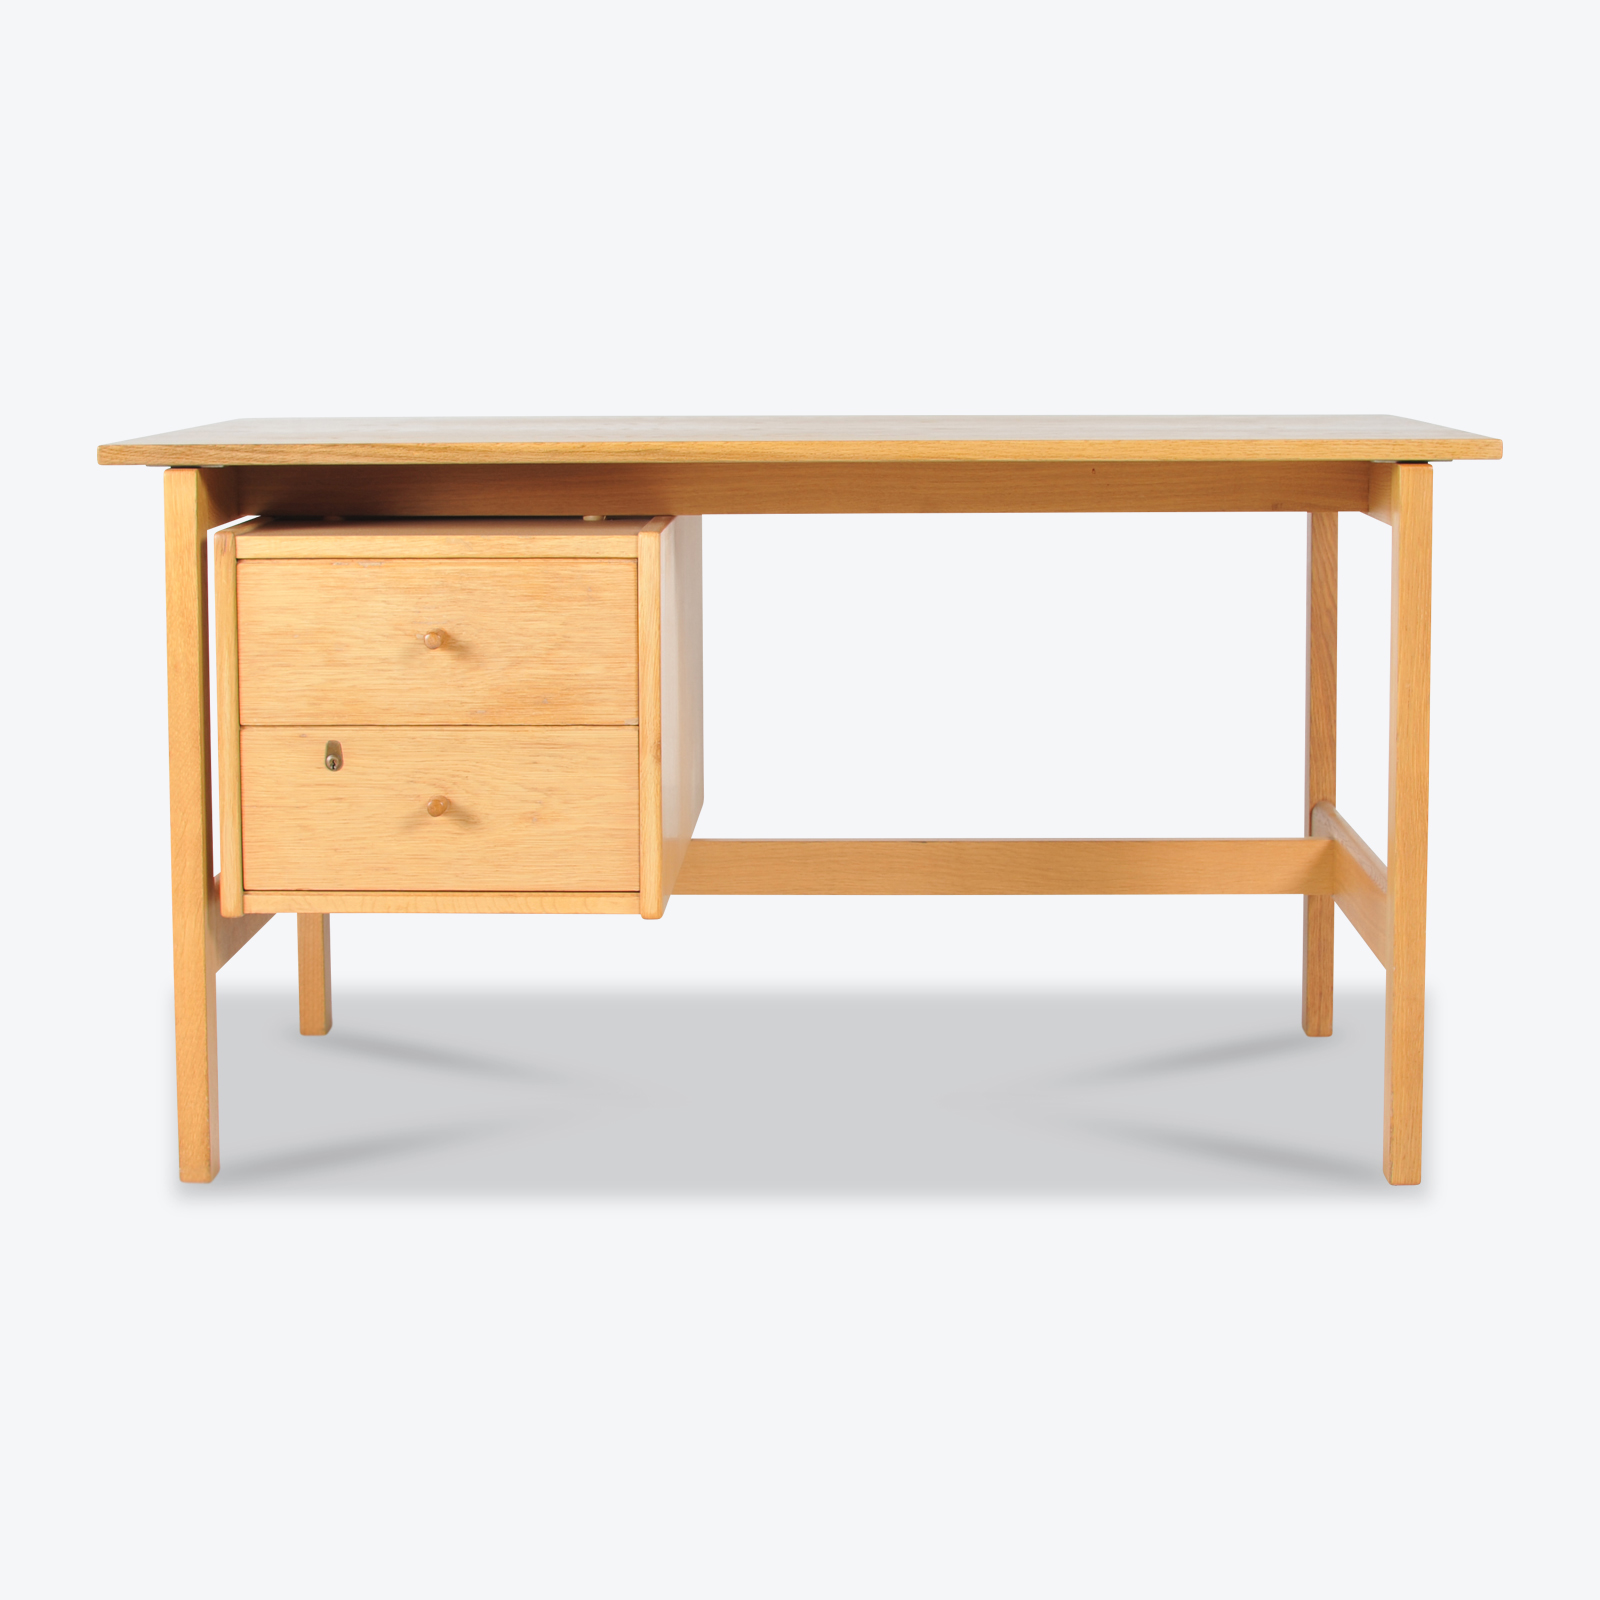 Desk By Hans Wegner In Oak Manufactured By Getama 1960s Denmark 00